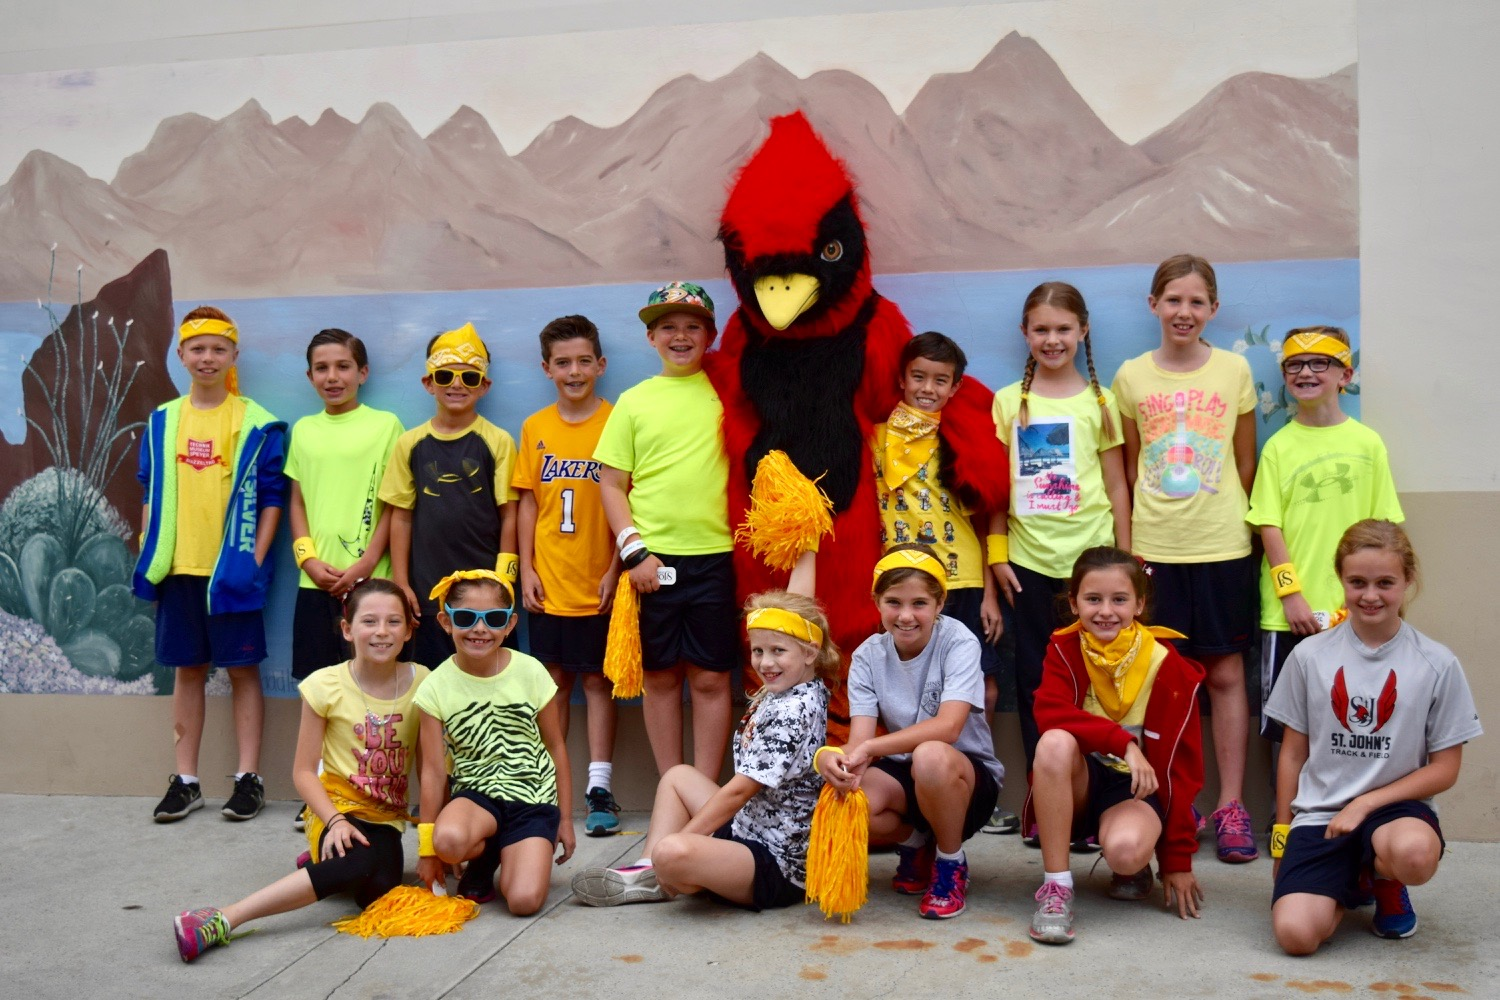 students standing with Cardinal mascot